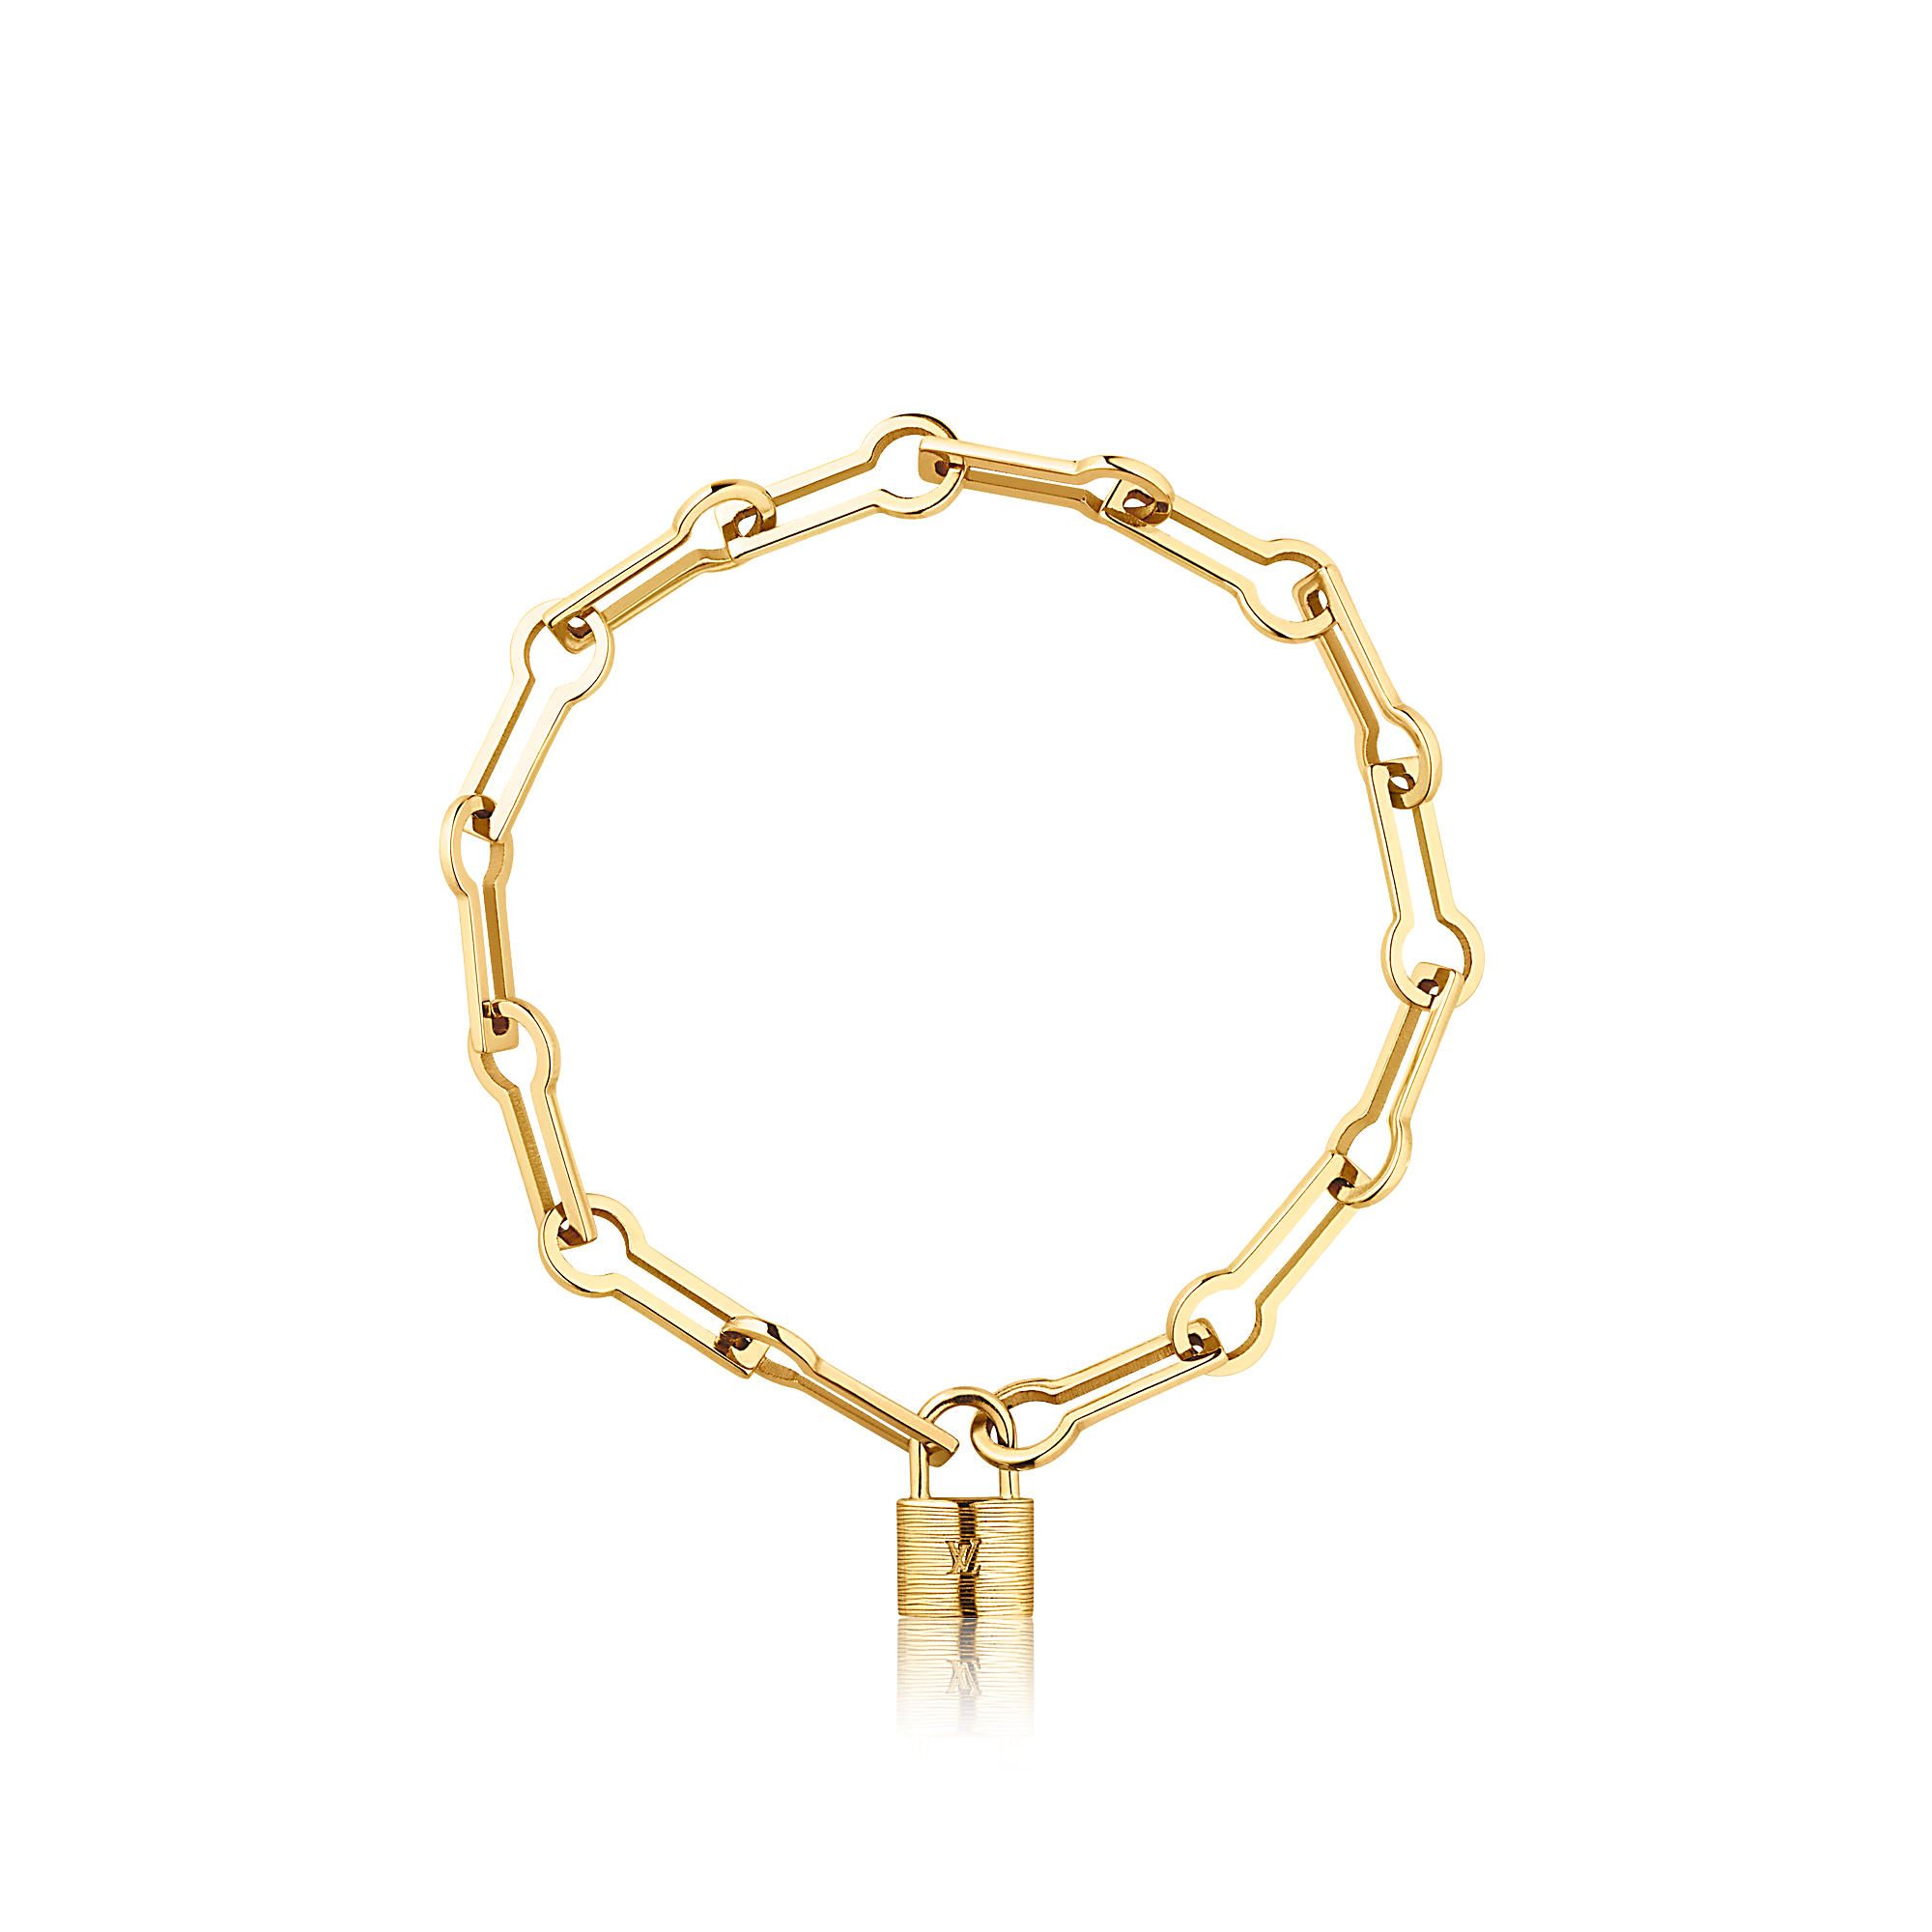 Discover louis vuitton petite malle bracelet via louis vuitton for